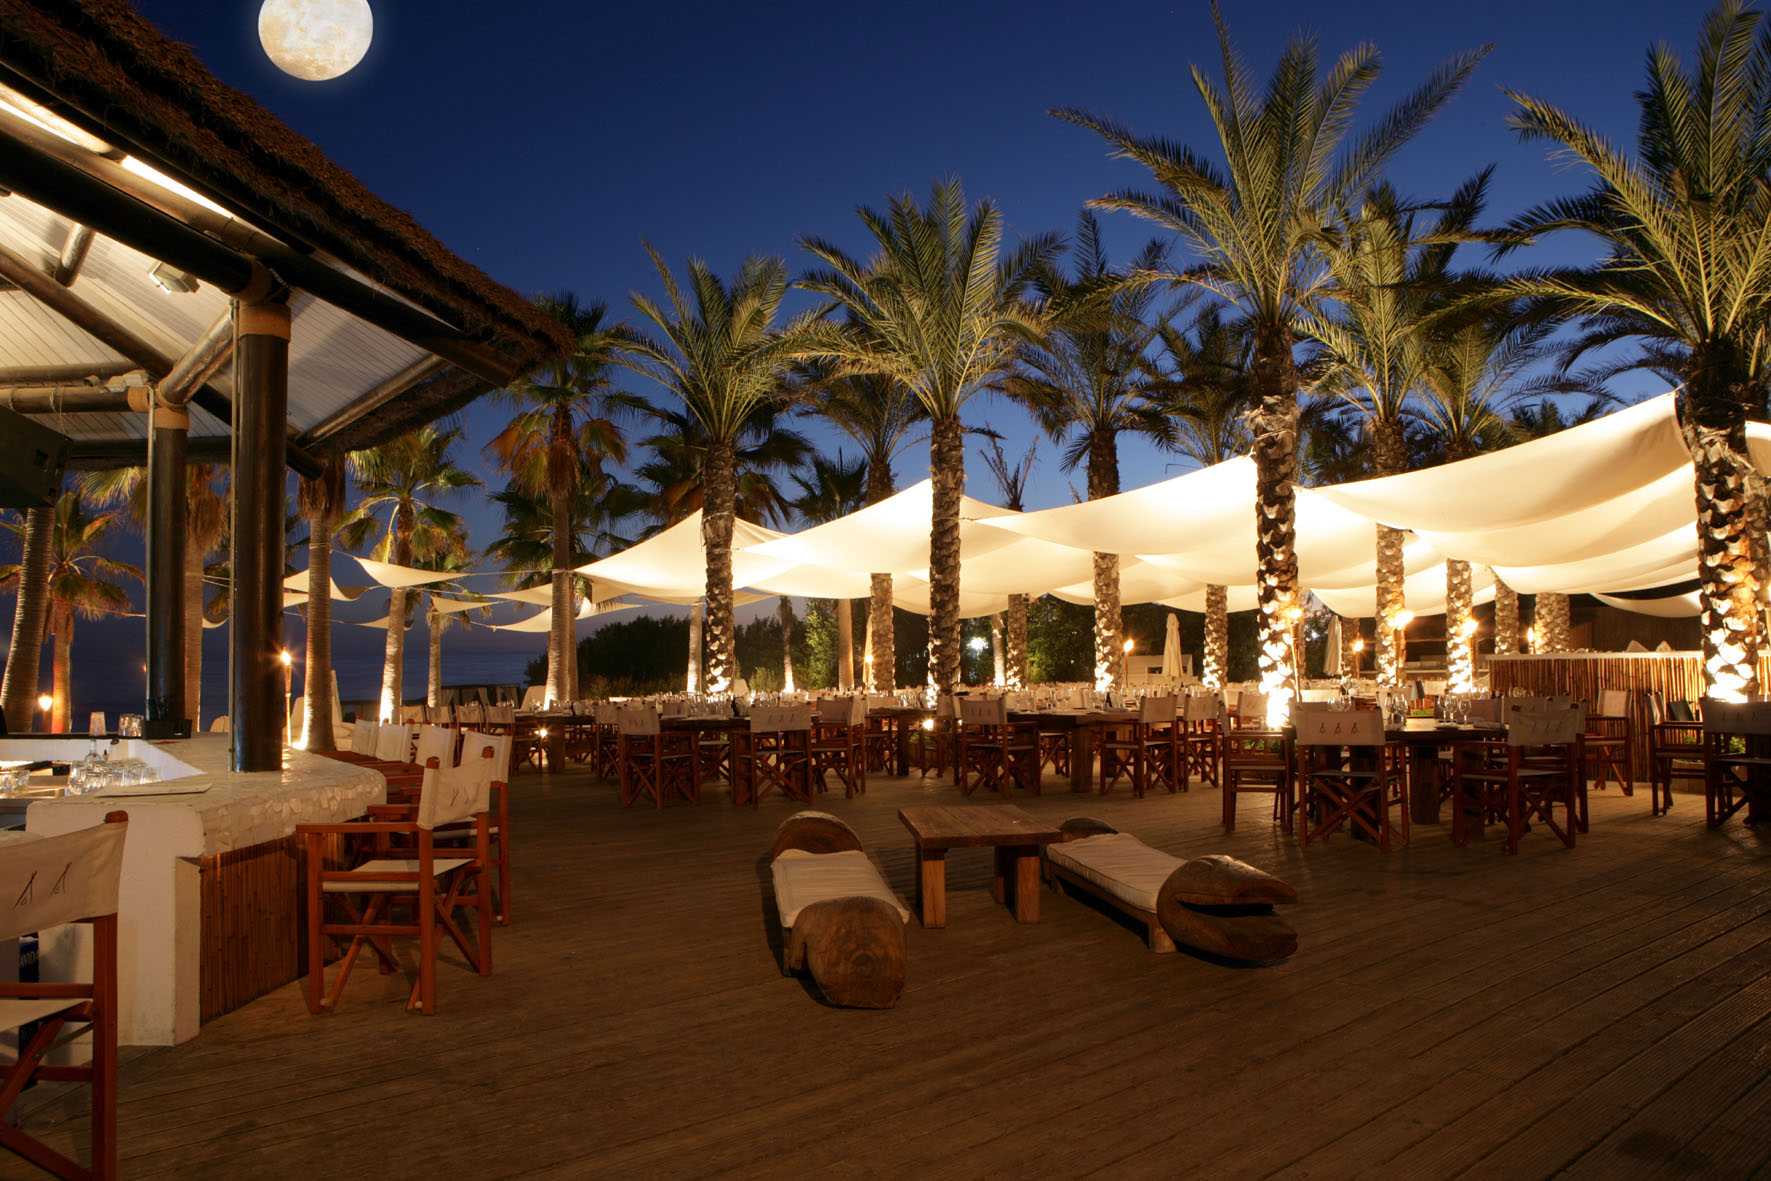 Don Carlos Leisure Resort To Marbella Old Town By Car